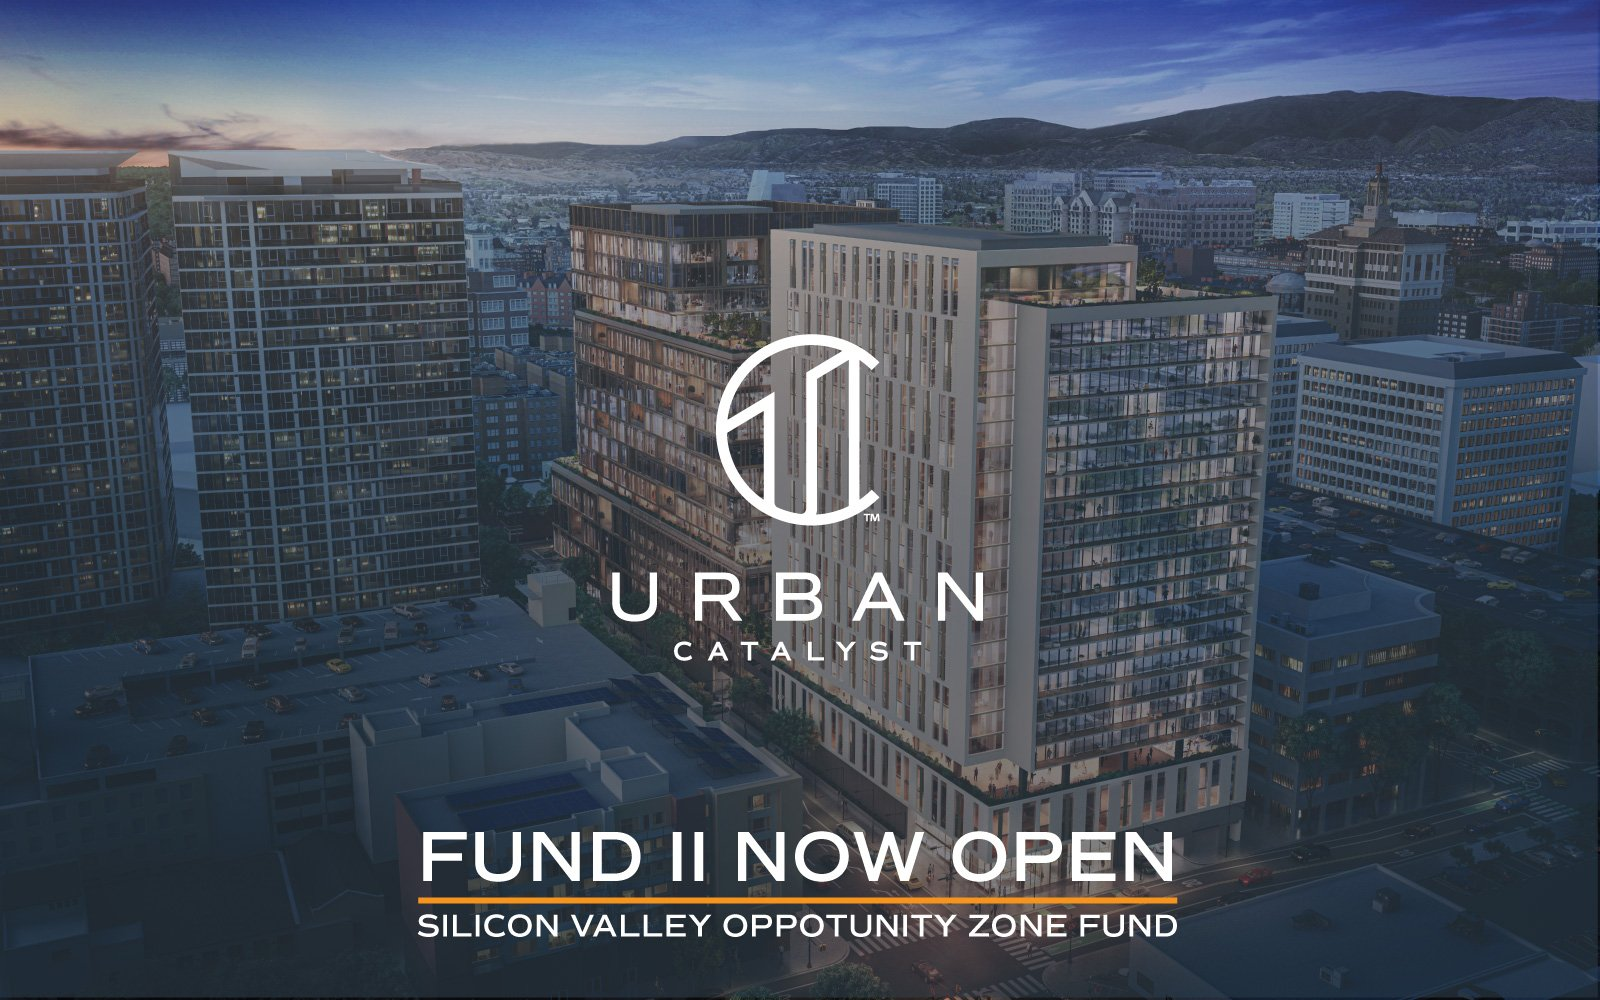 As Featured in Silicon Valley Business Journal: Urban Catalyst Opportunity Zone Fund II is Here